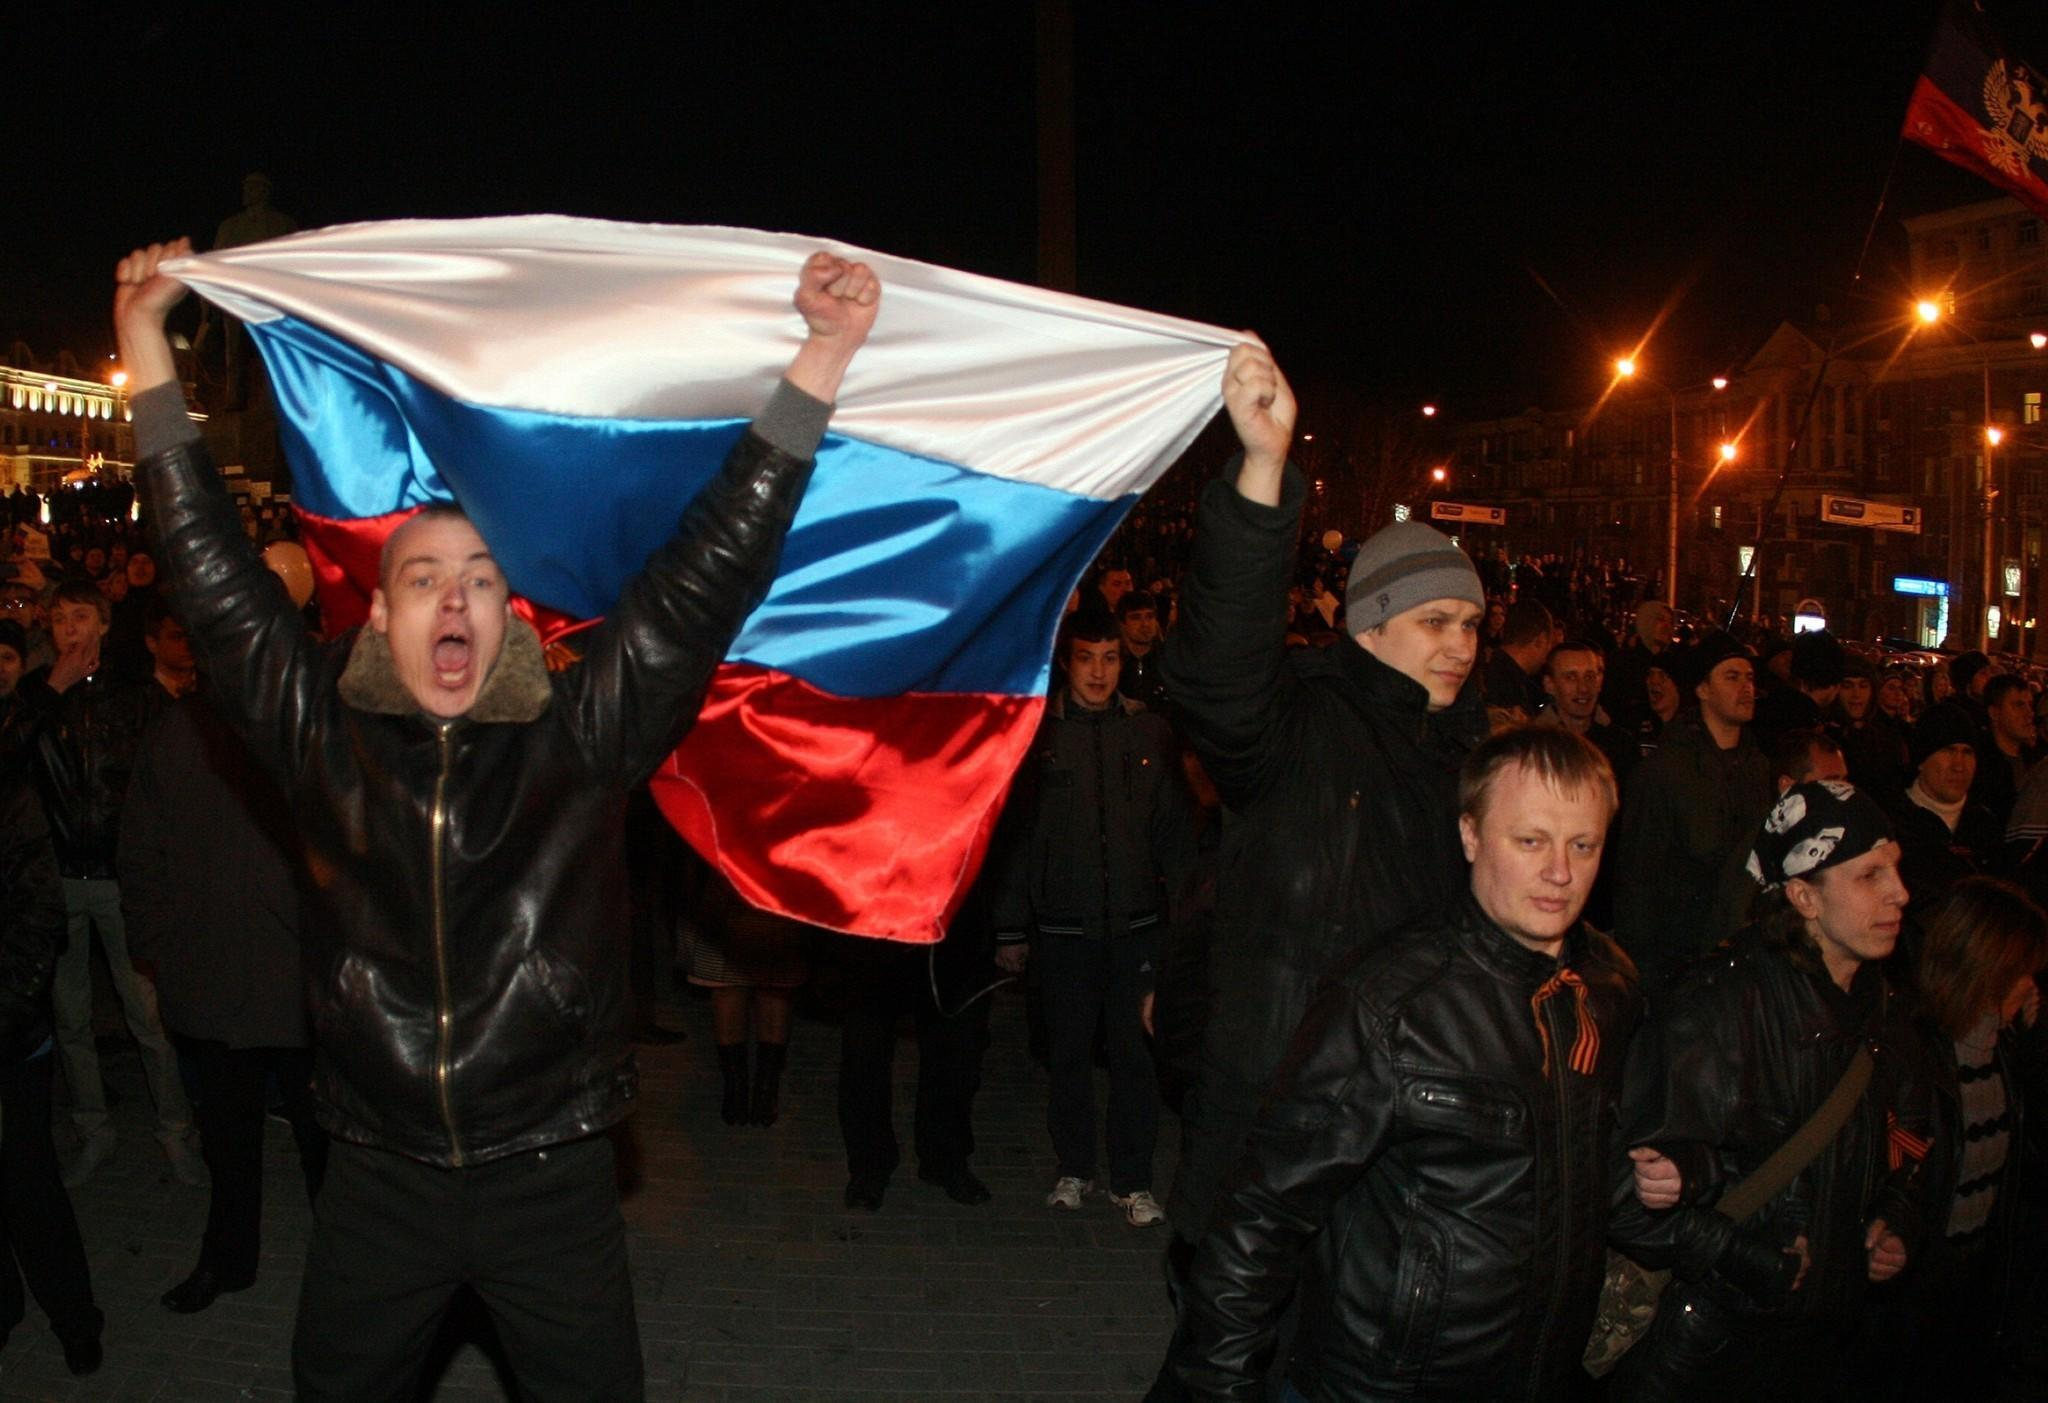 Pro-Russian activists hold Russian flags during a rally in the eastern Ukrainian city of Donetsk on Thursday.